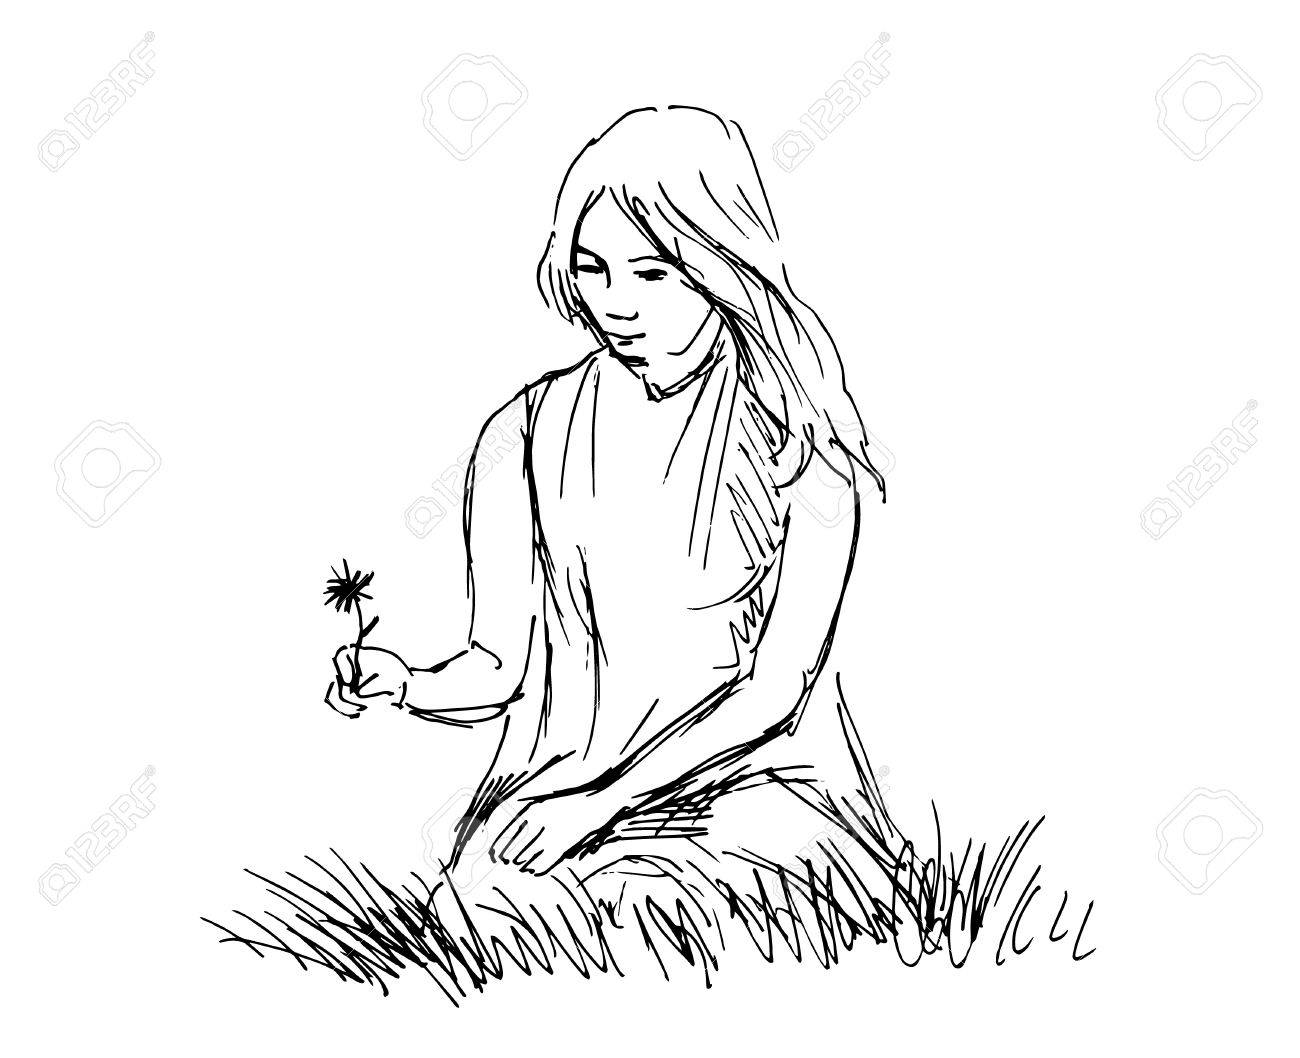 1300x1058 Hand Sketch Woman Sitting In Grass. Vector Illustration Royalty